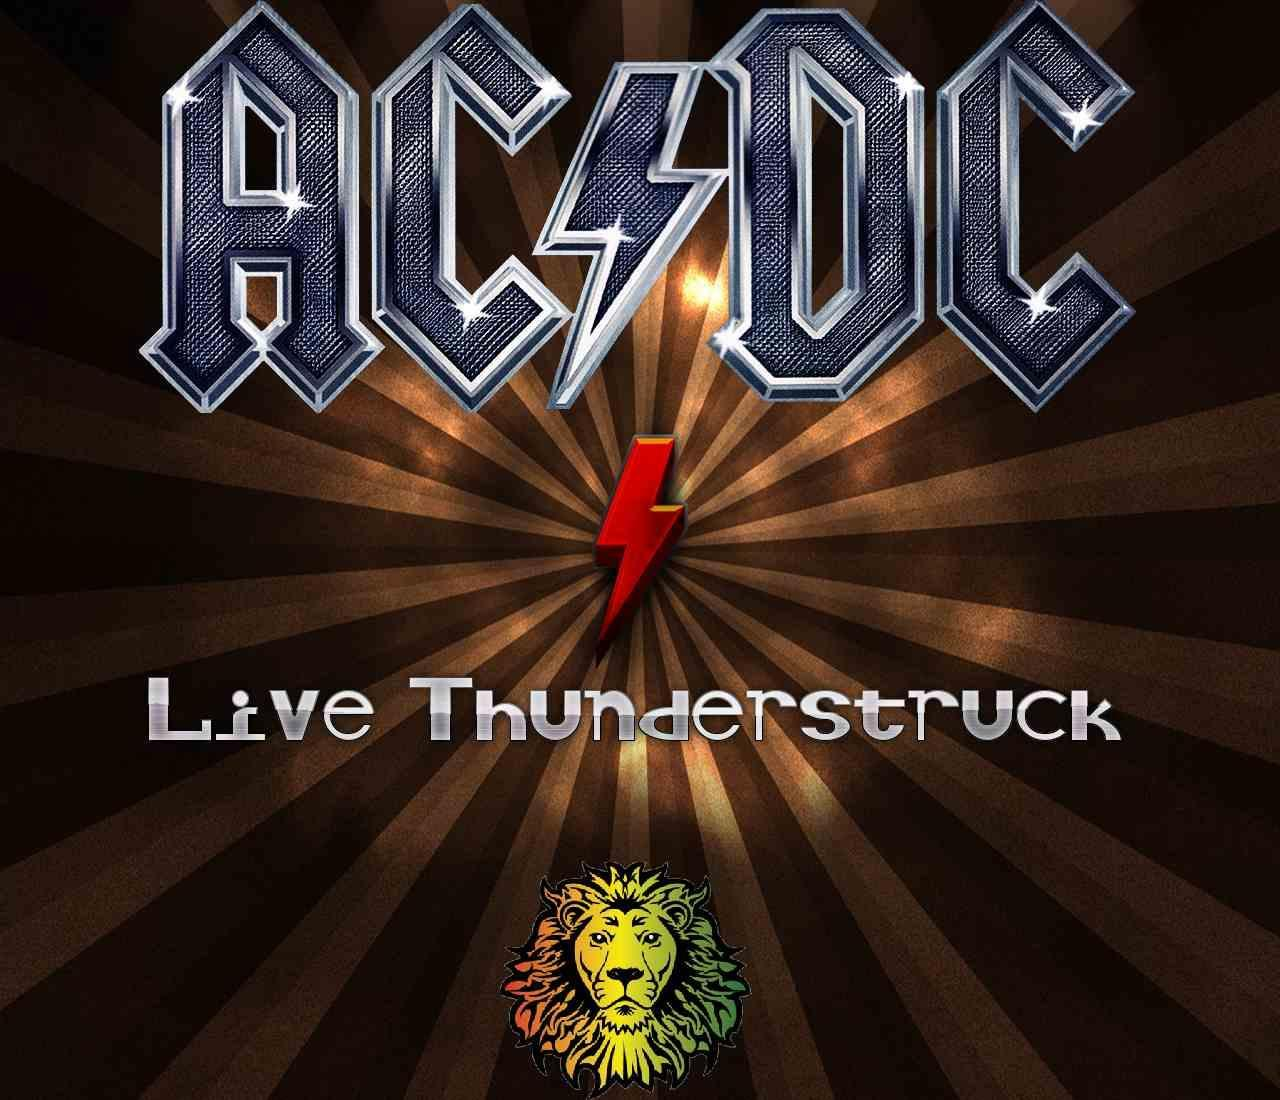 ac dc thunderstruck free music download